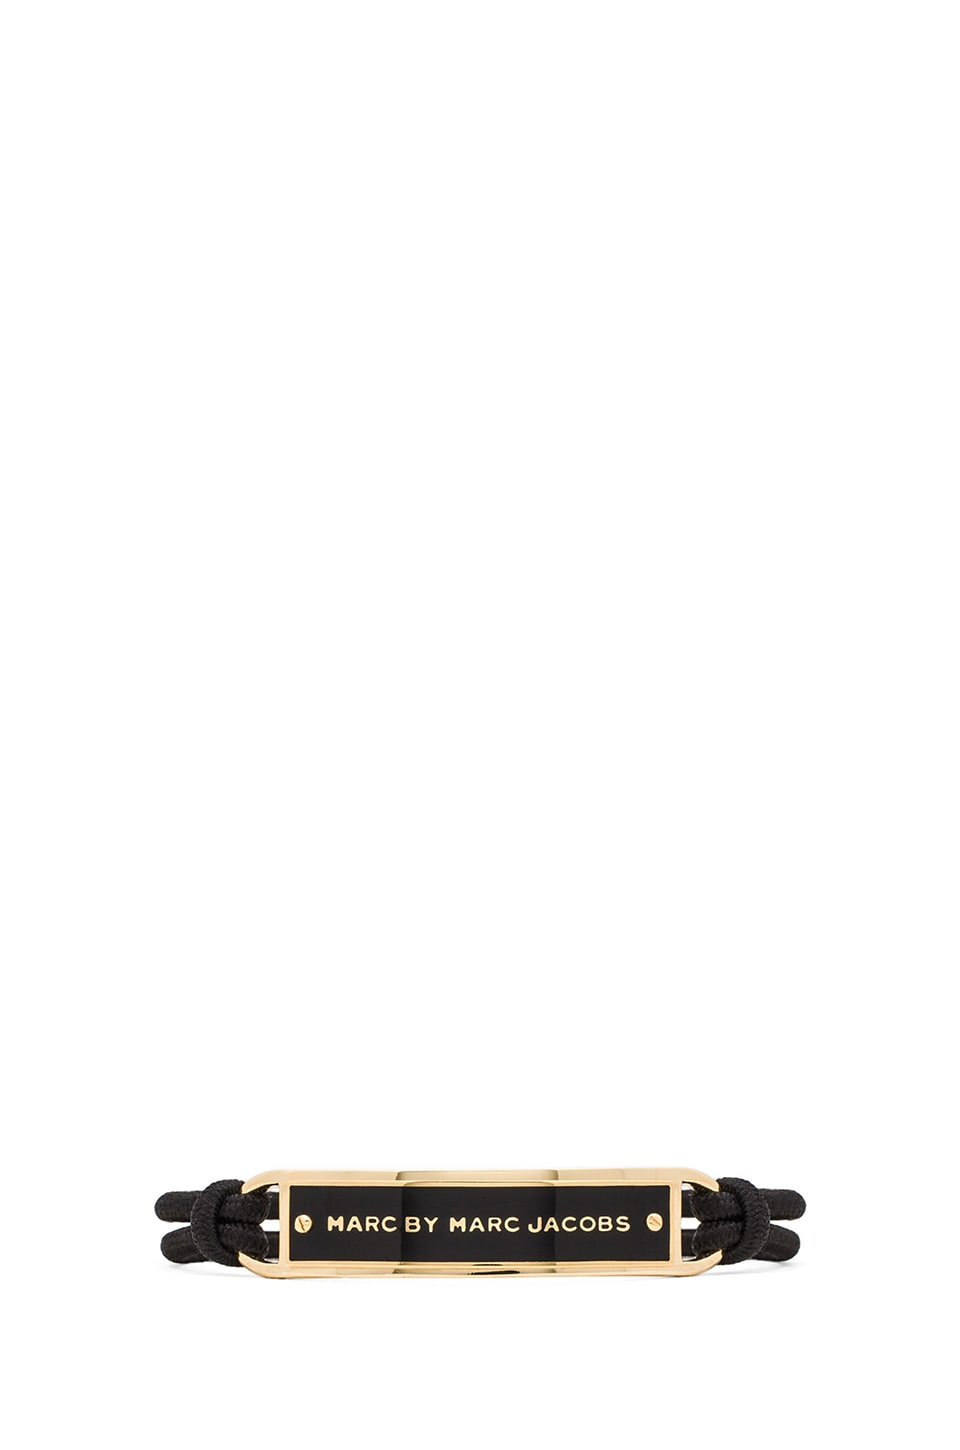 Marc by Marc Jacobs Grab & Go New Plaque Sporty Bracelet in Black & Oro